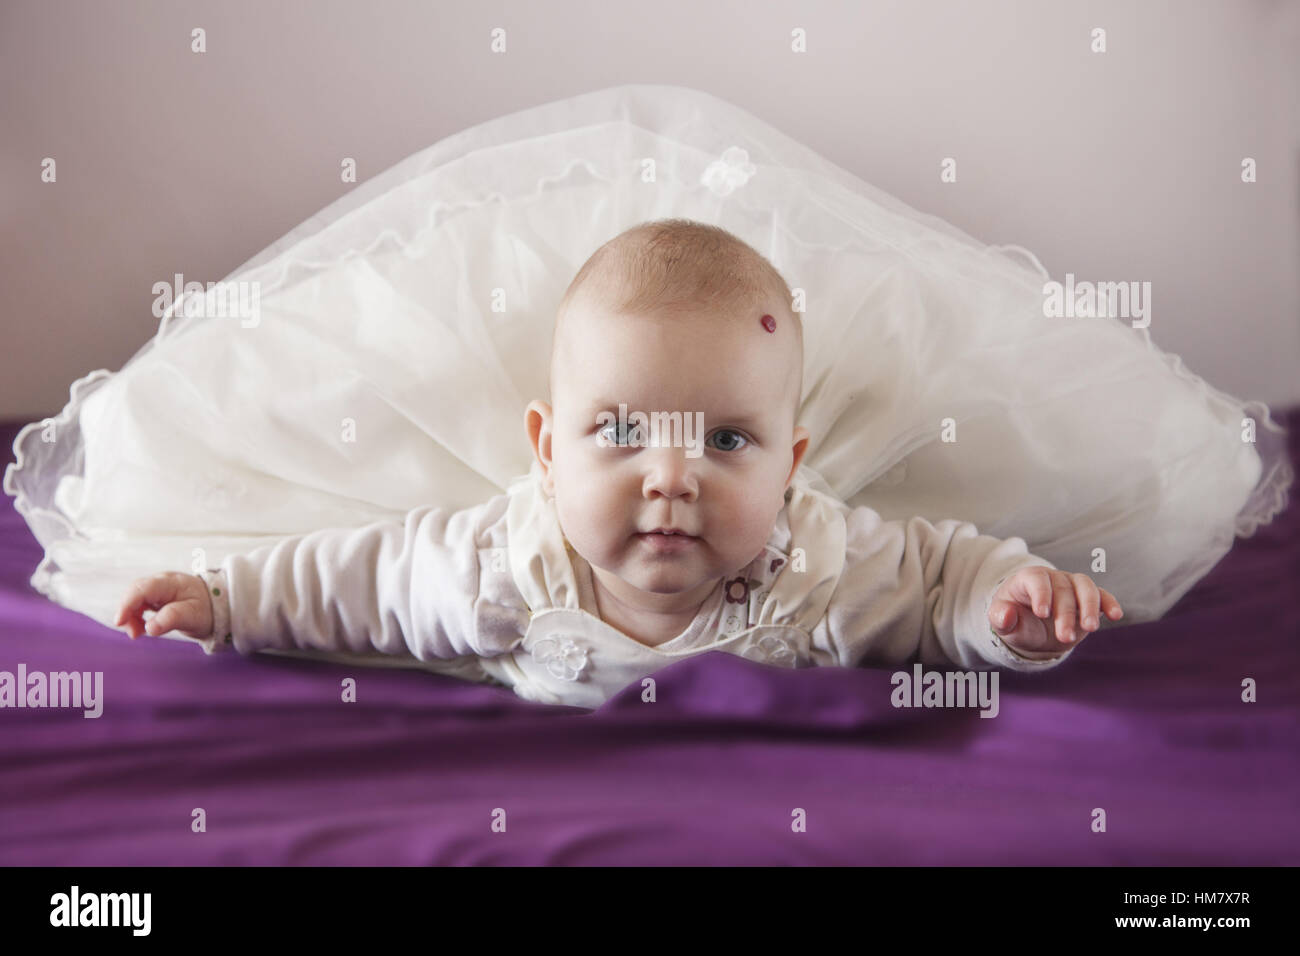 Portrait of baby boy (18-23 months) lying on bed - Stock Image